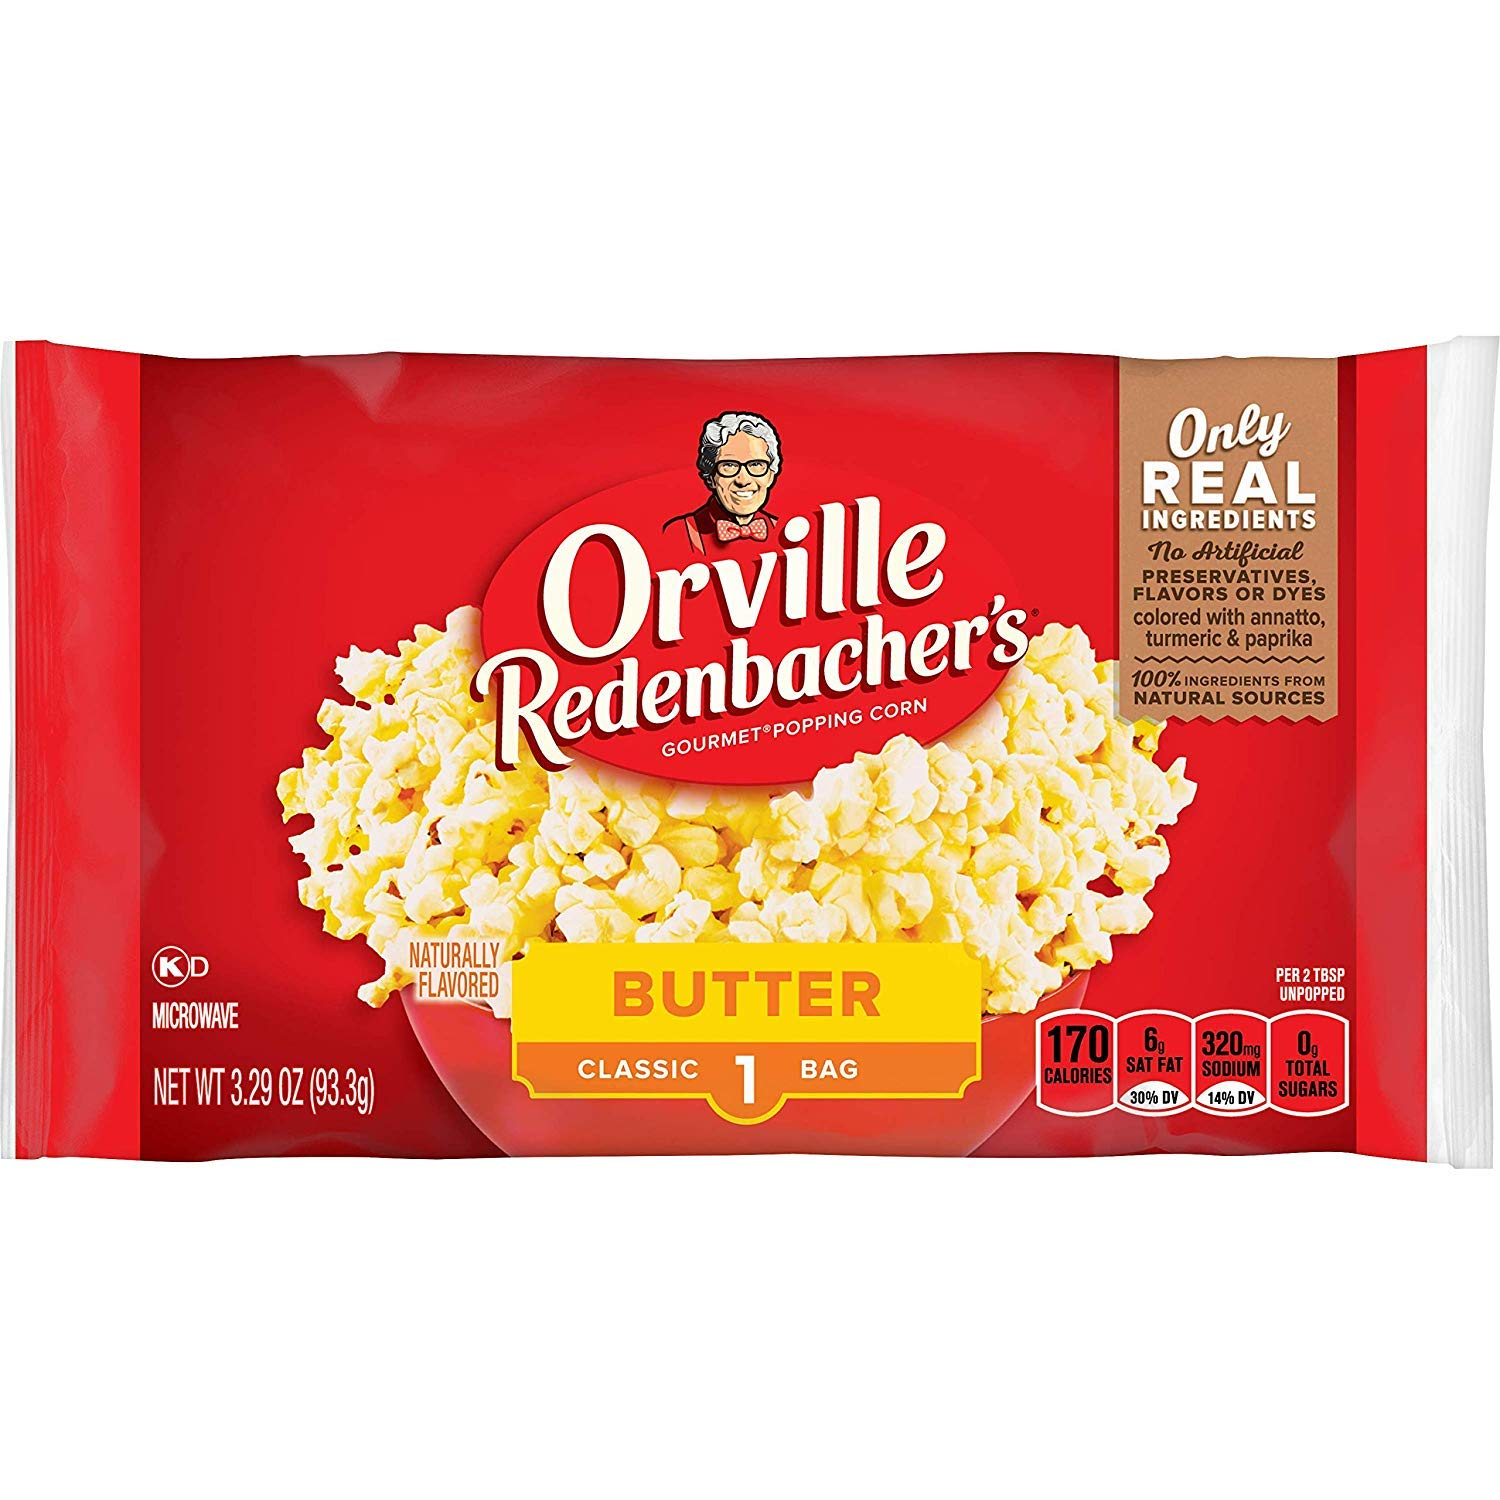 Orville Redenbacher's Butter Popcorn, 3.29 Ounce Classic Bag, Pack of 36 (2 Pack (Pack of 36)) by Orville Redenbacher's